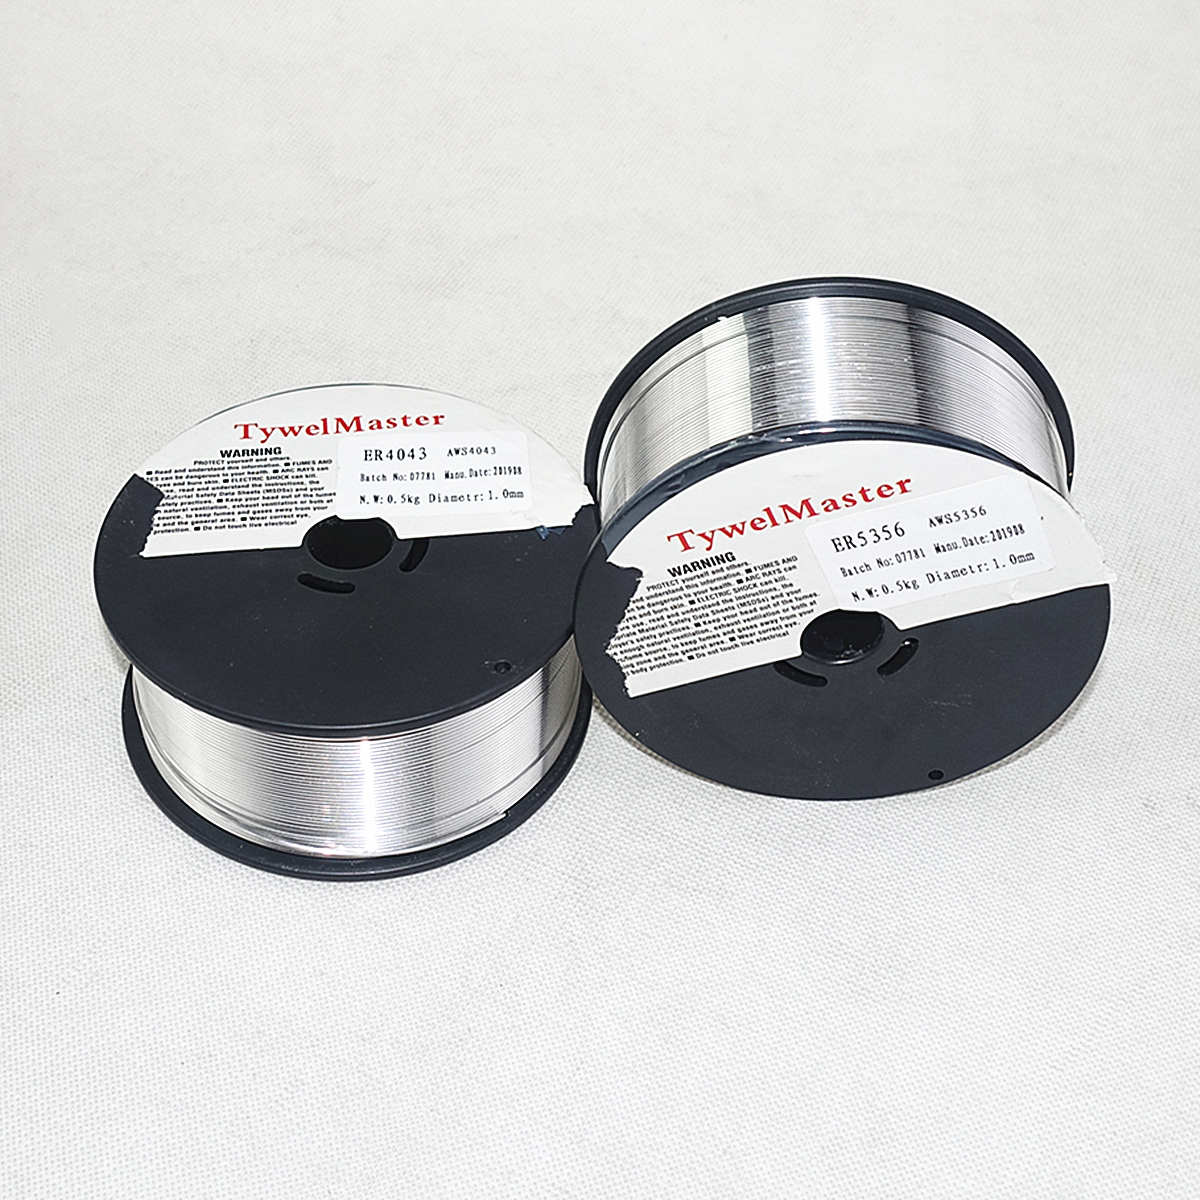 AWS A5.10 ER5356 Aluminum MIG Welding Wire Al-Mg Alloy 0.5KG Dia 0.8/1.0/1.2mm 5356 Aluminium MIG Welding Wire